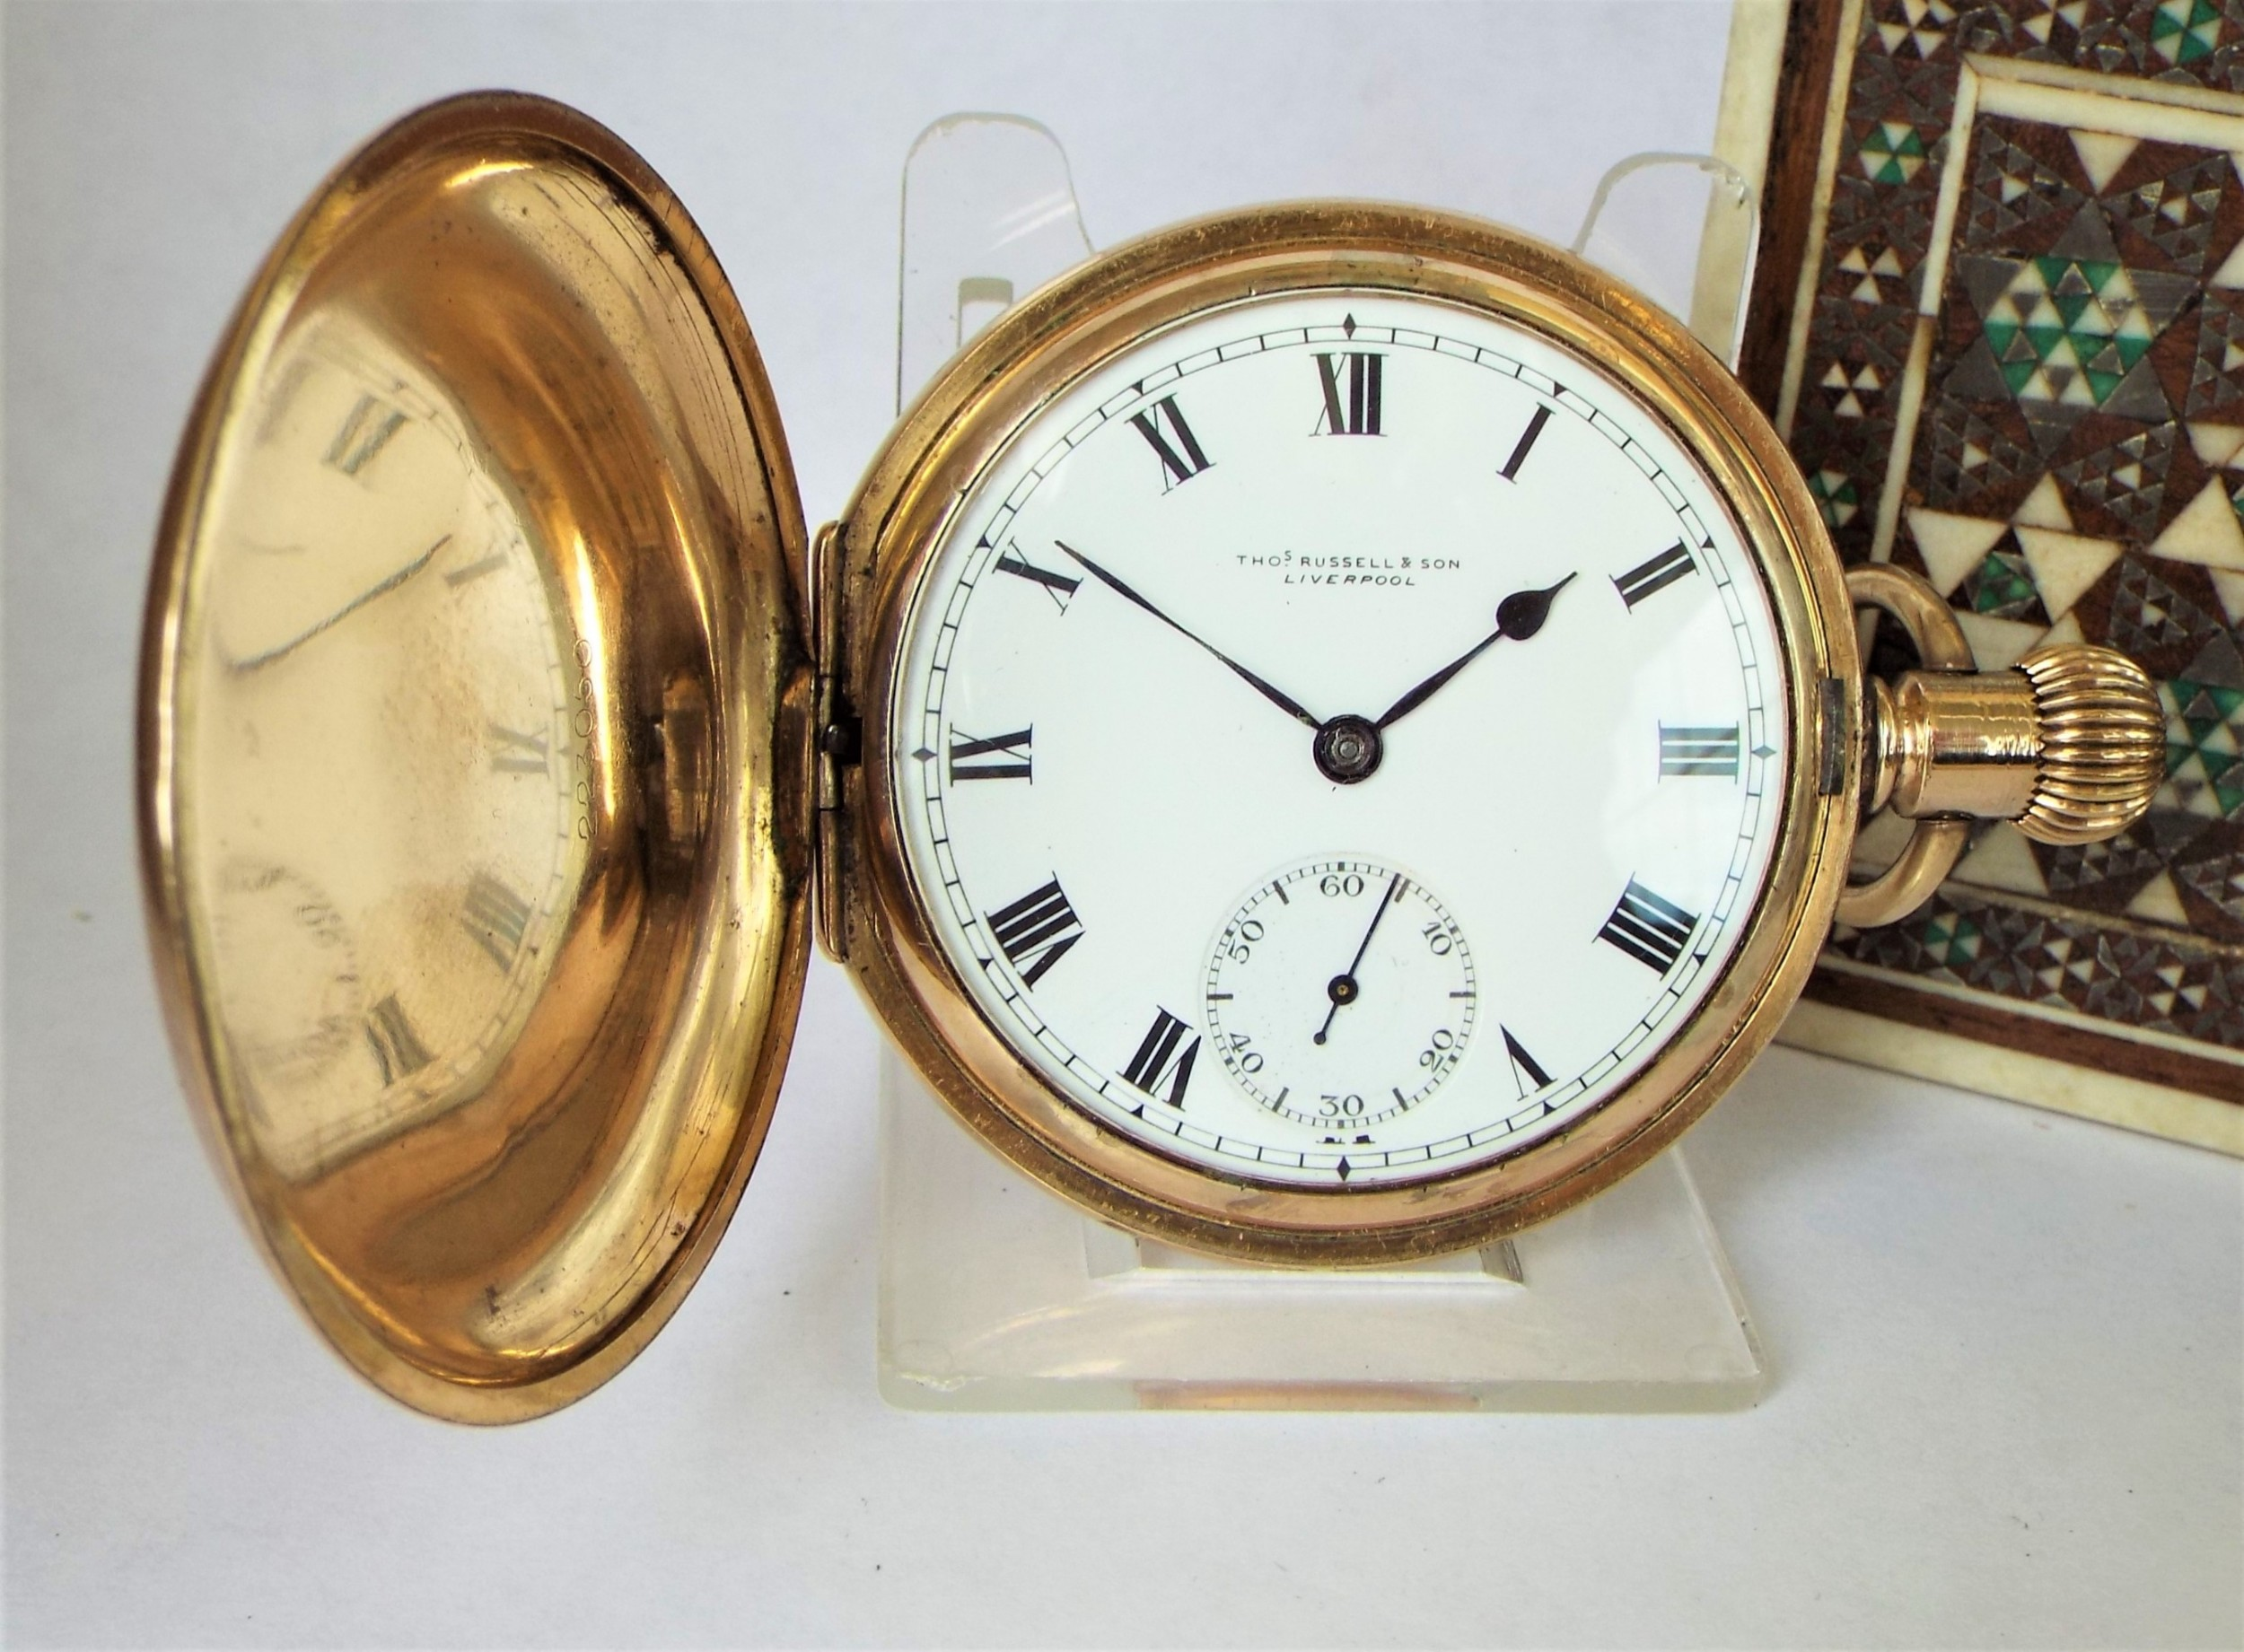 a 1920s thomas russell full hunter pocket watch